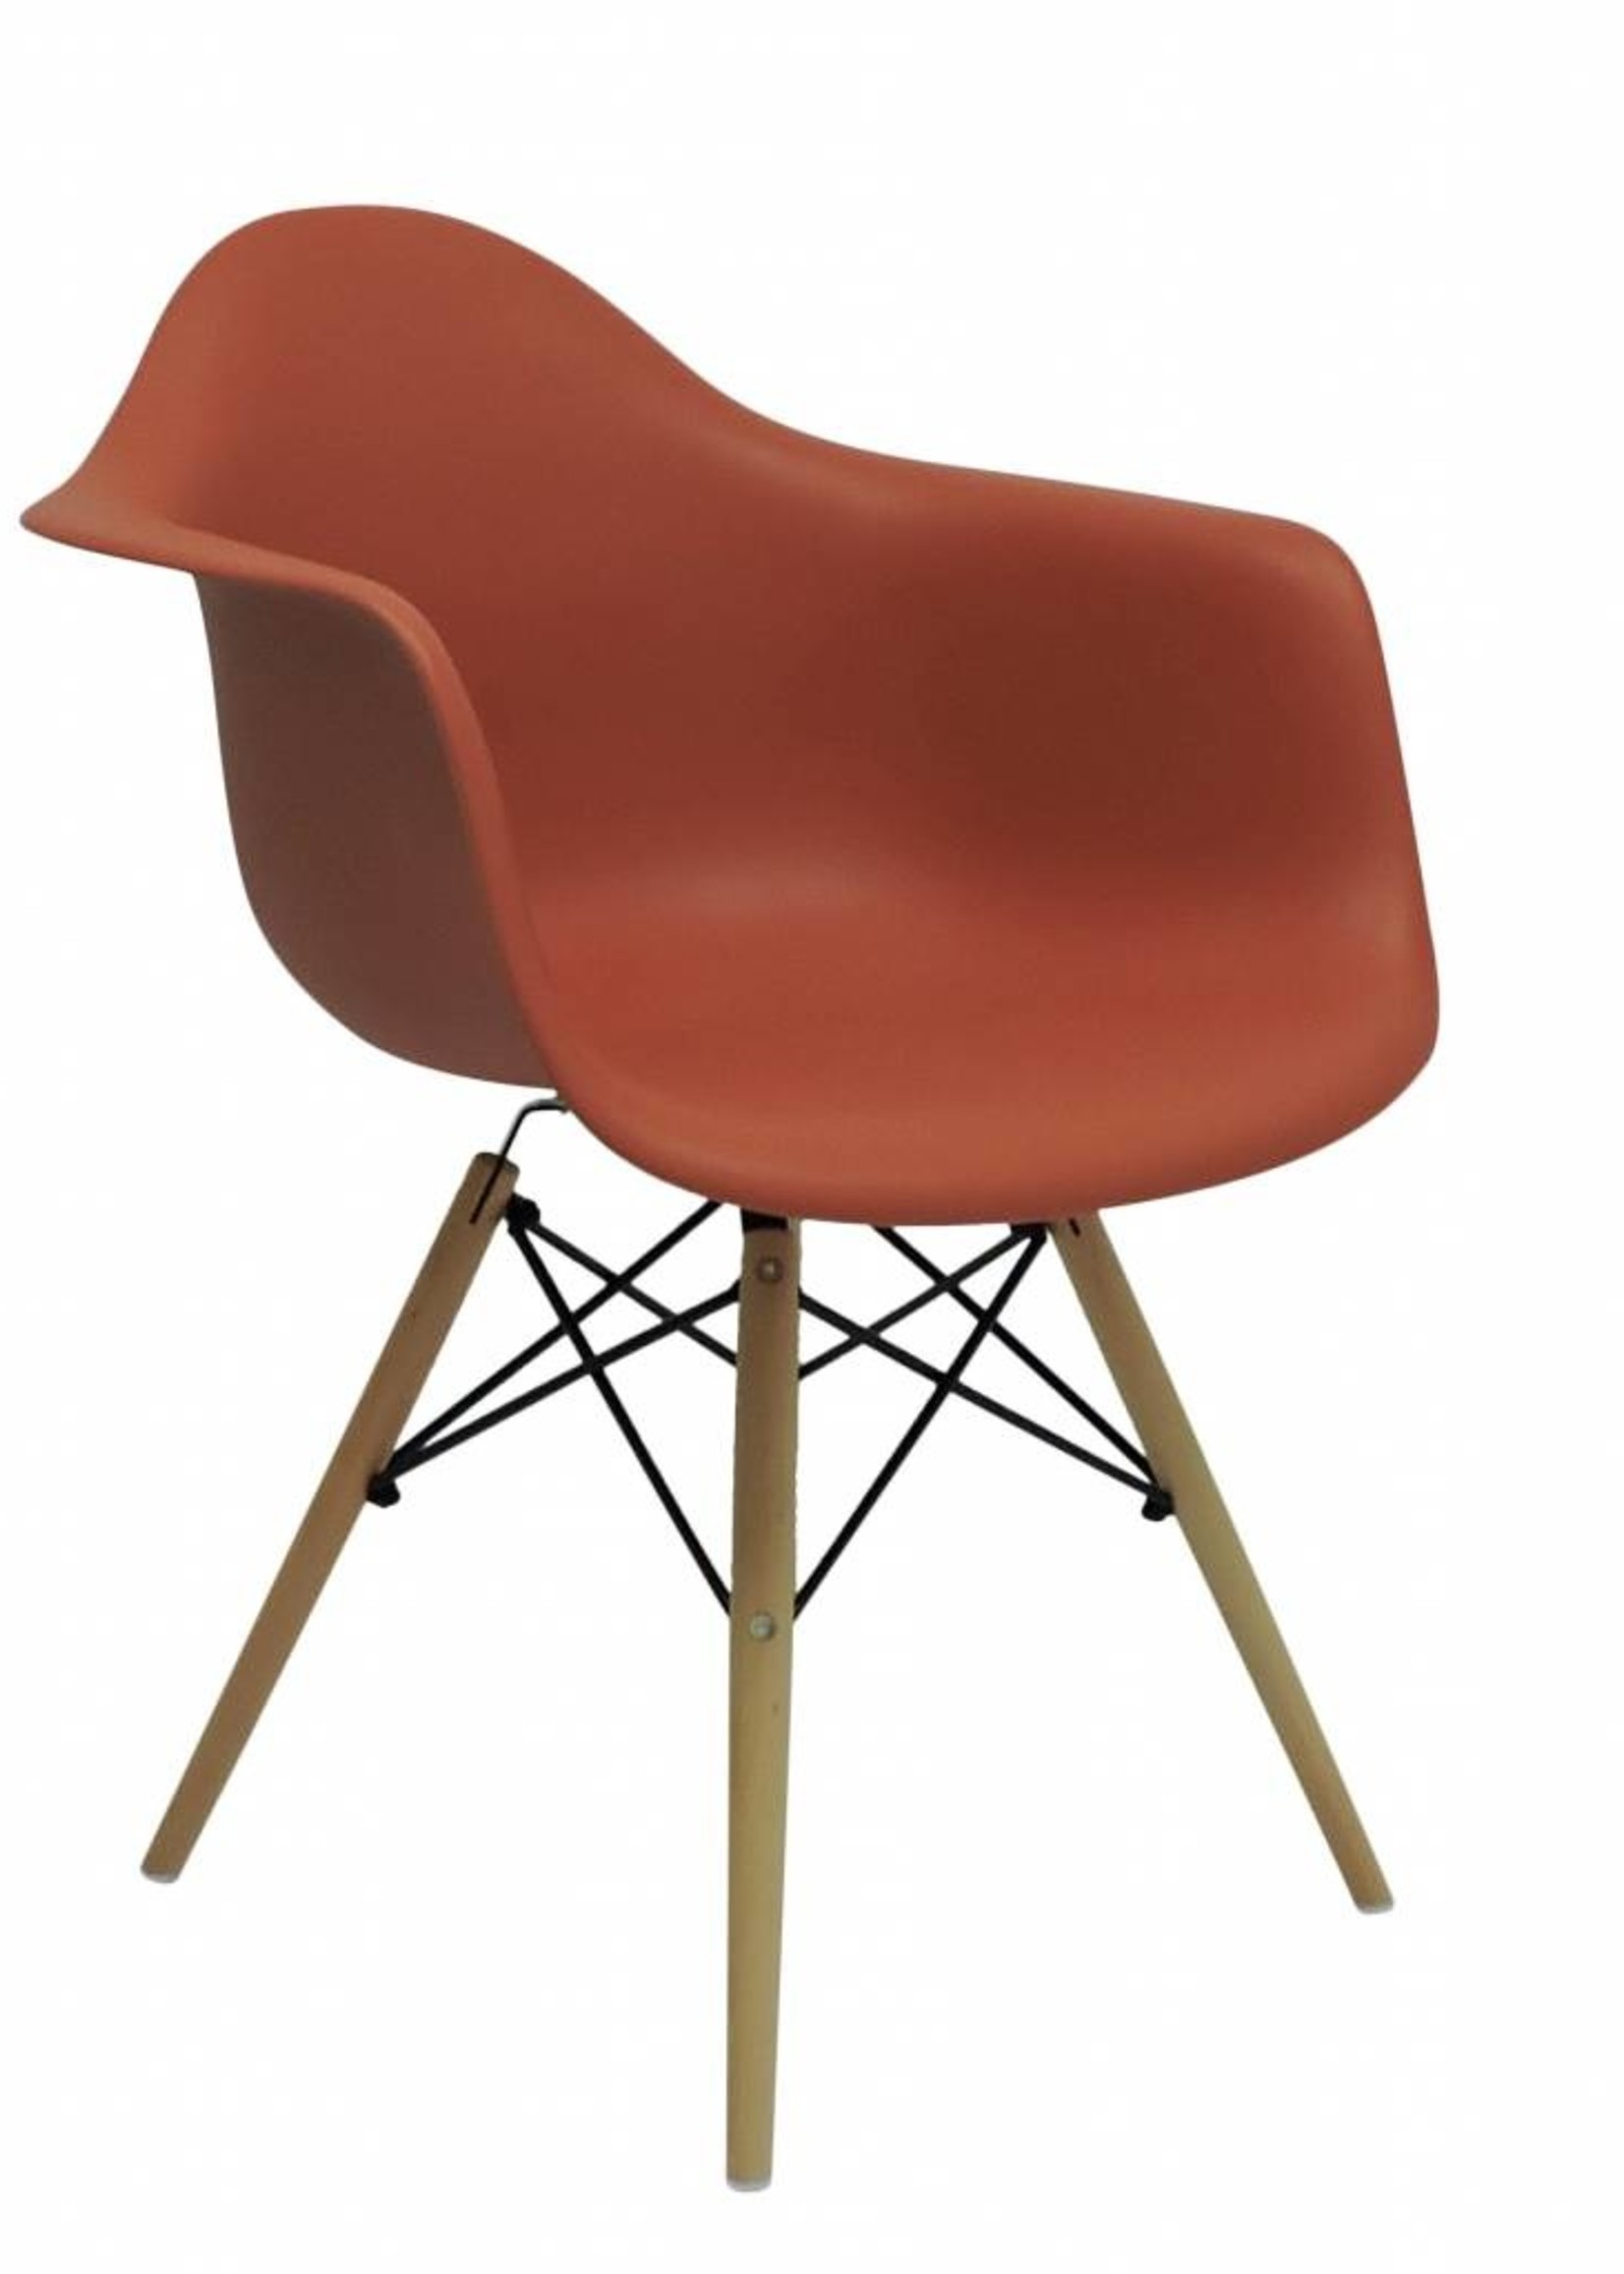 DAW Eames Design Chair Orange